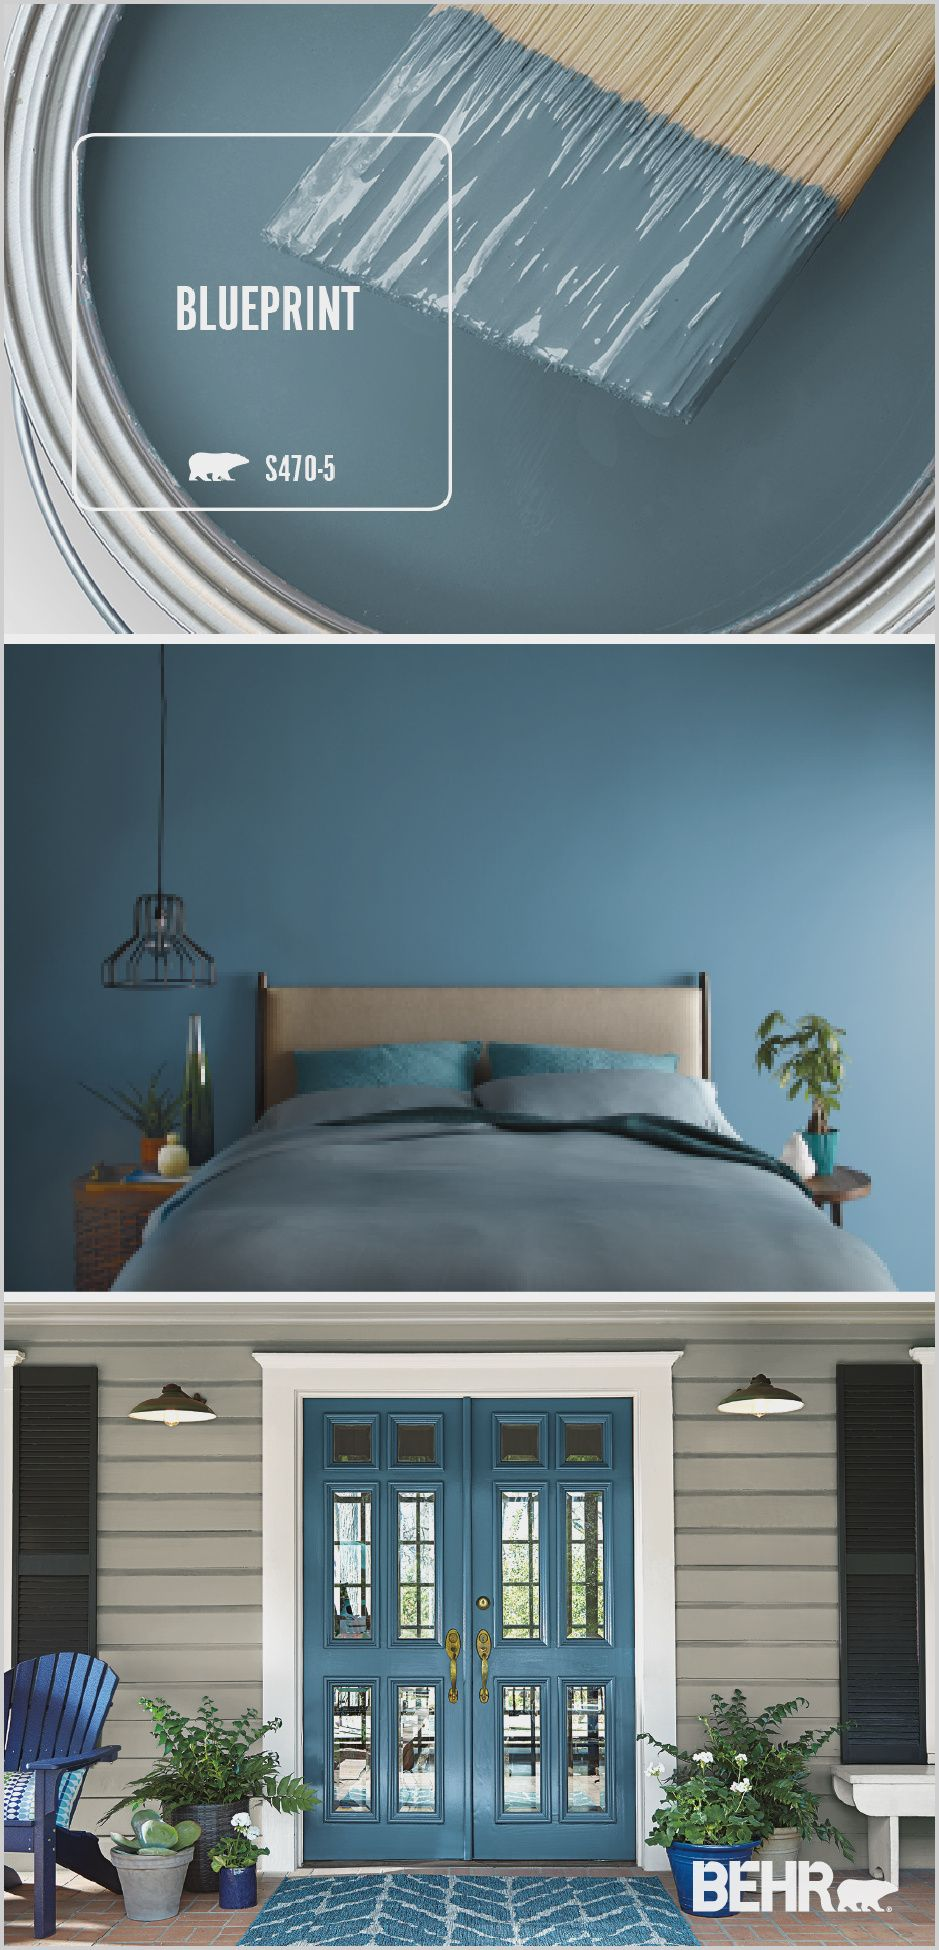 Behr Blue Paint Living Room in 2020 Paint colors for